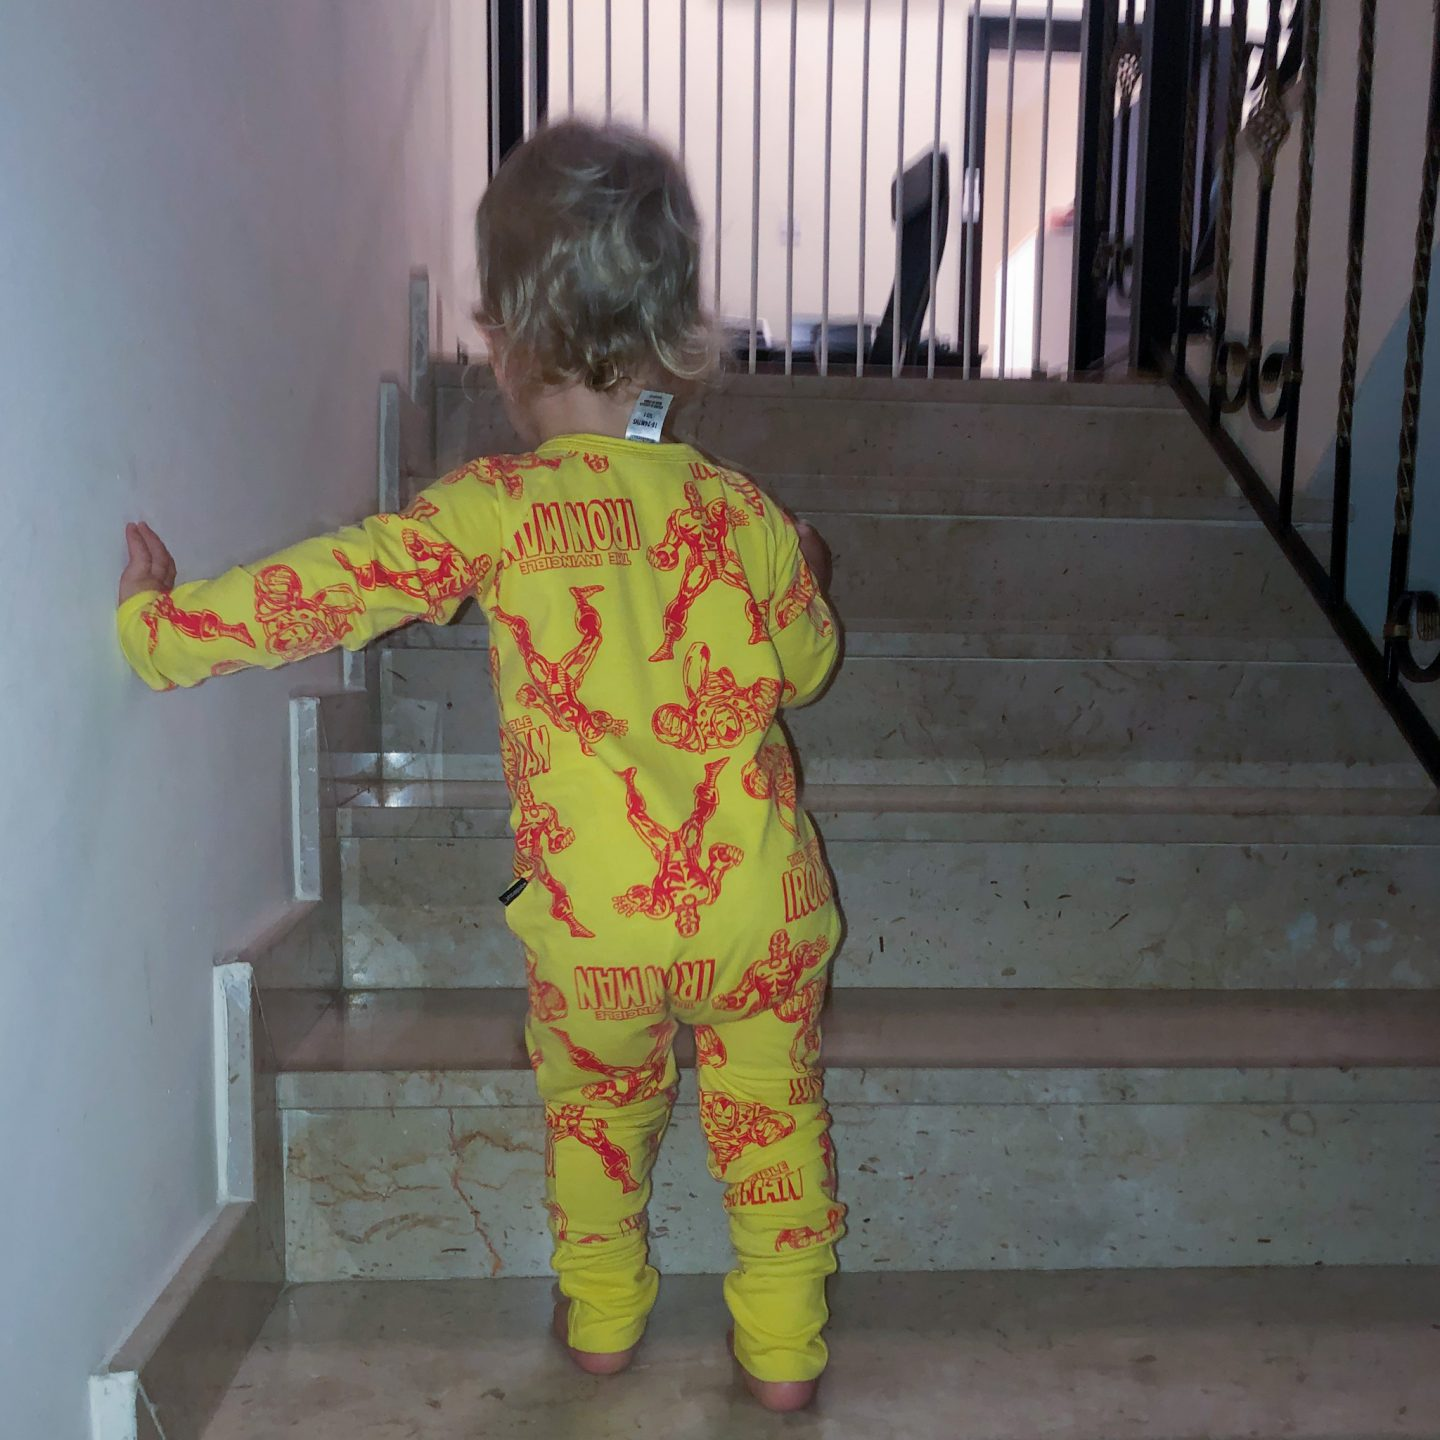 Baby walking up the stairs to bed wearing Ironman babygrow